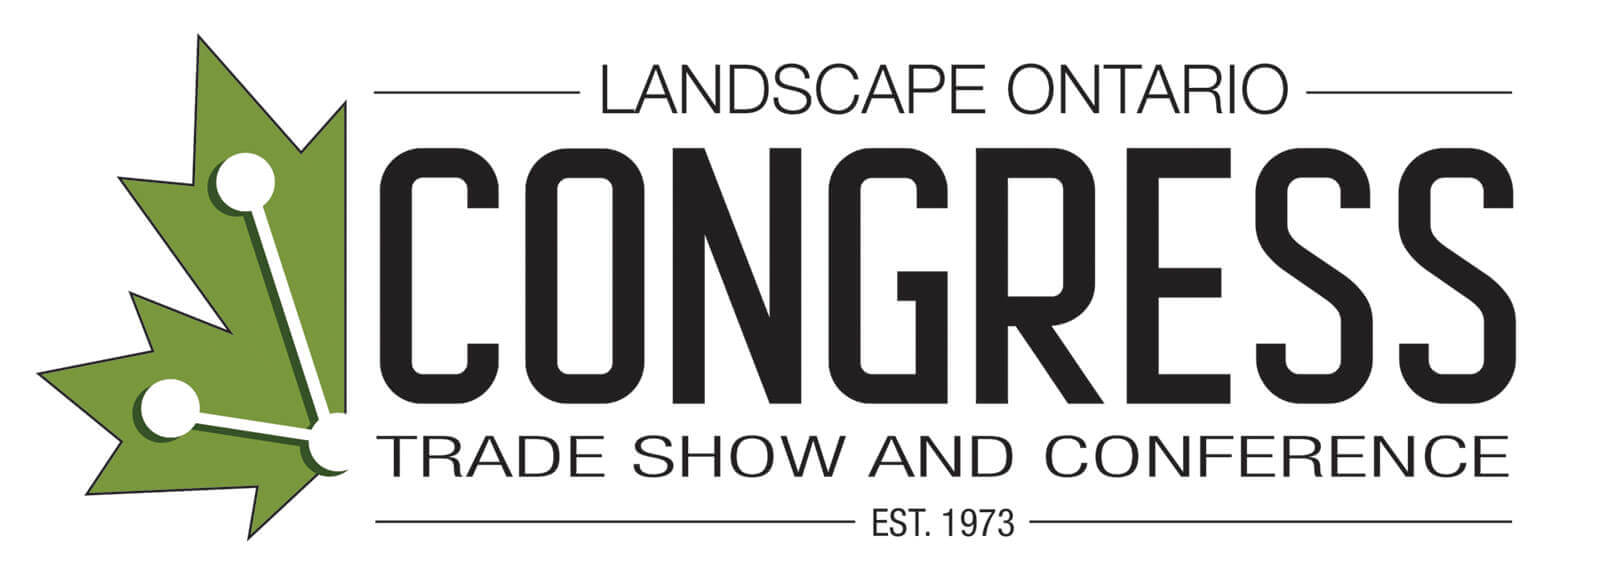 Landscape Ontario Congress Trade Show and Conference